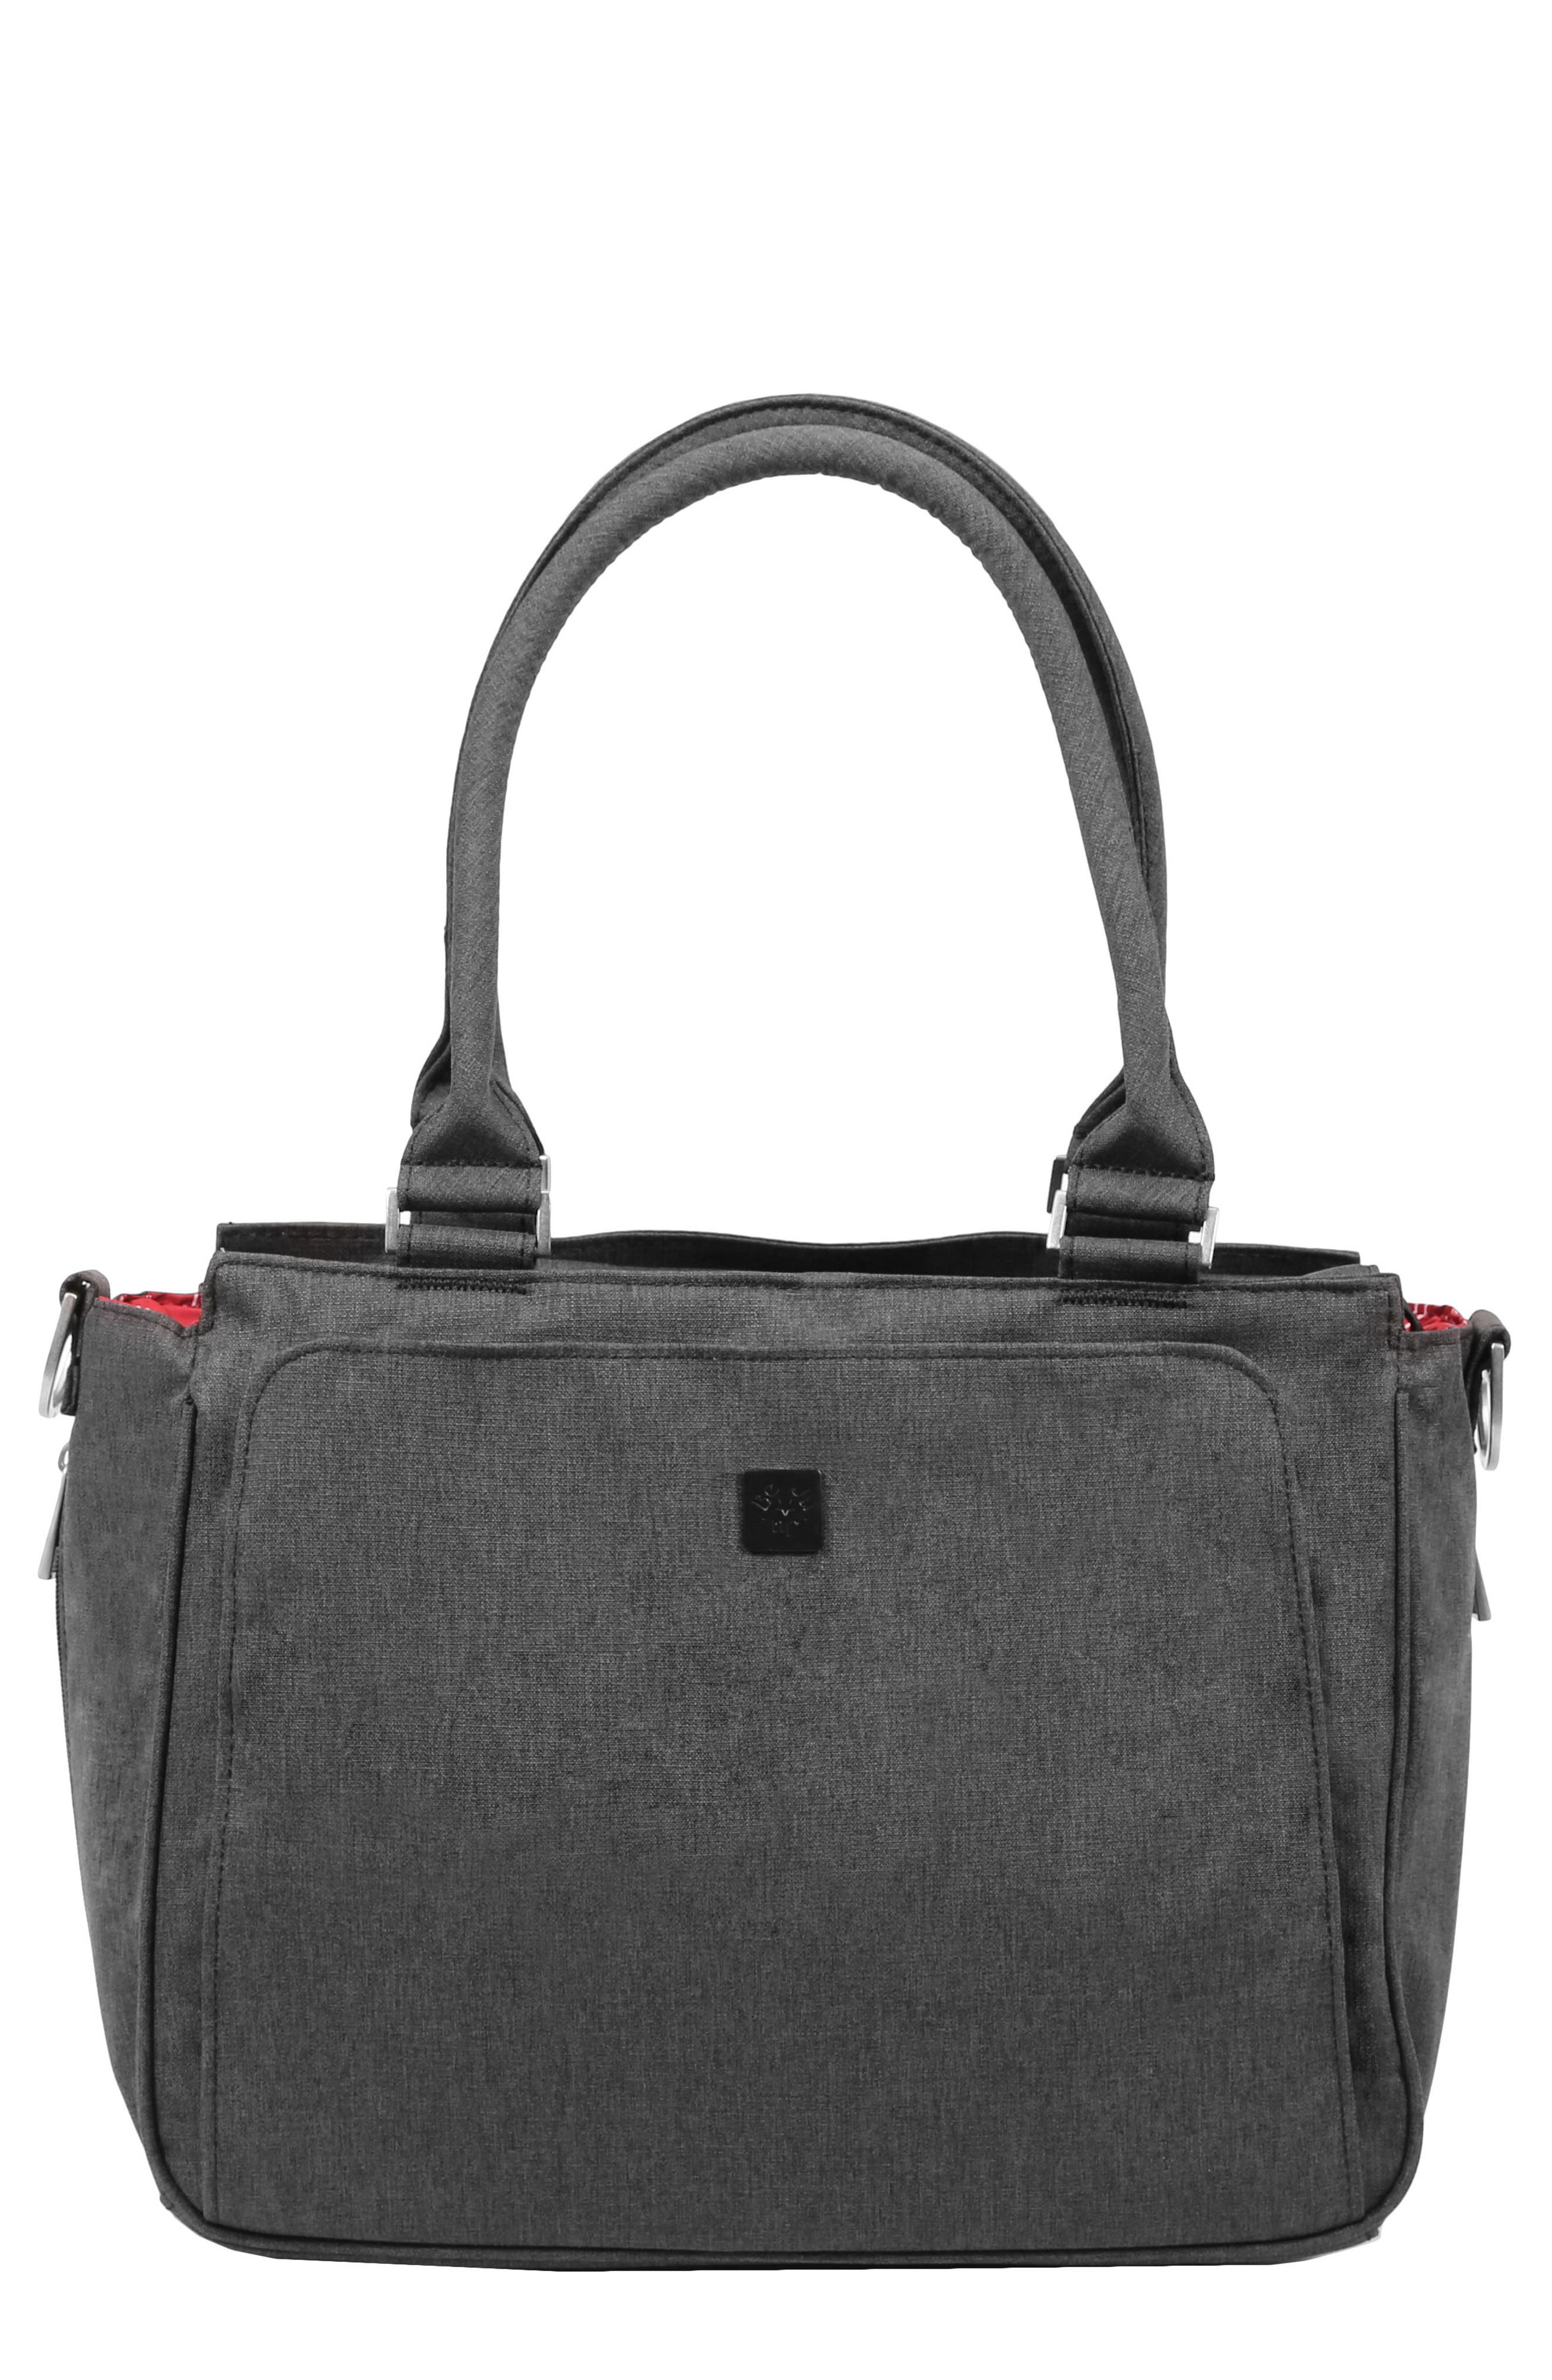 'Be Classy - Onyx Collection' Messenger Diaper Bag,                         Main,                         color, Chrome